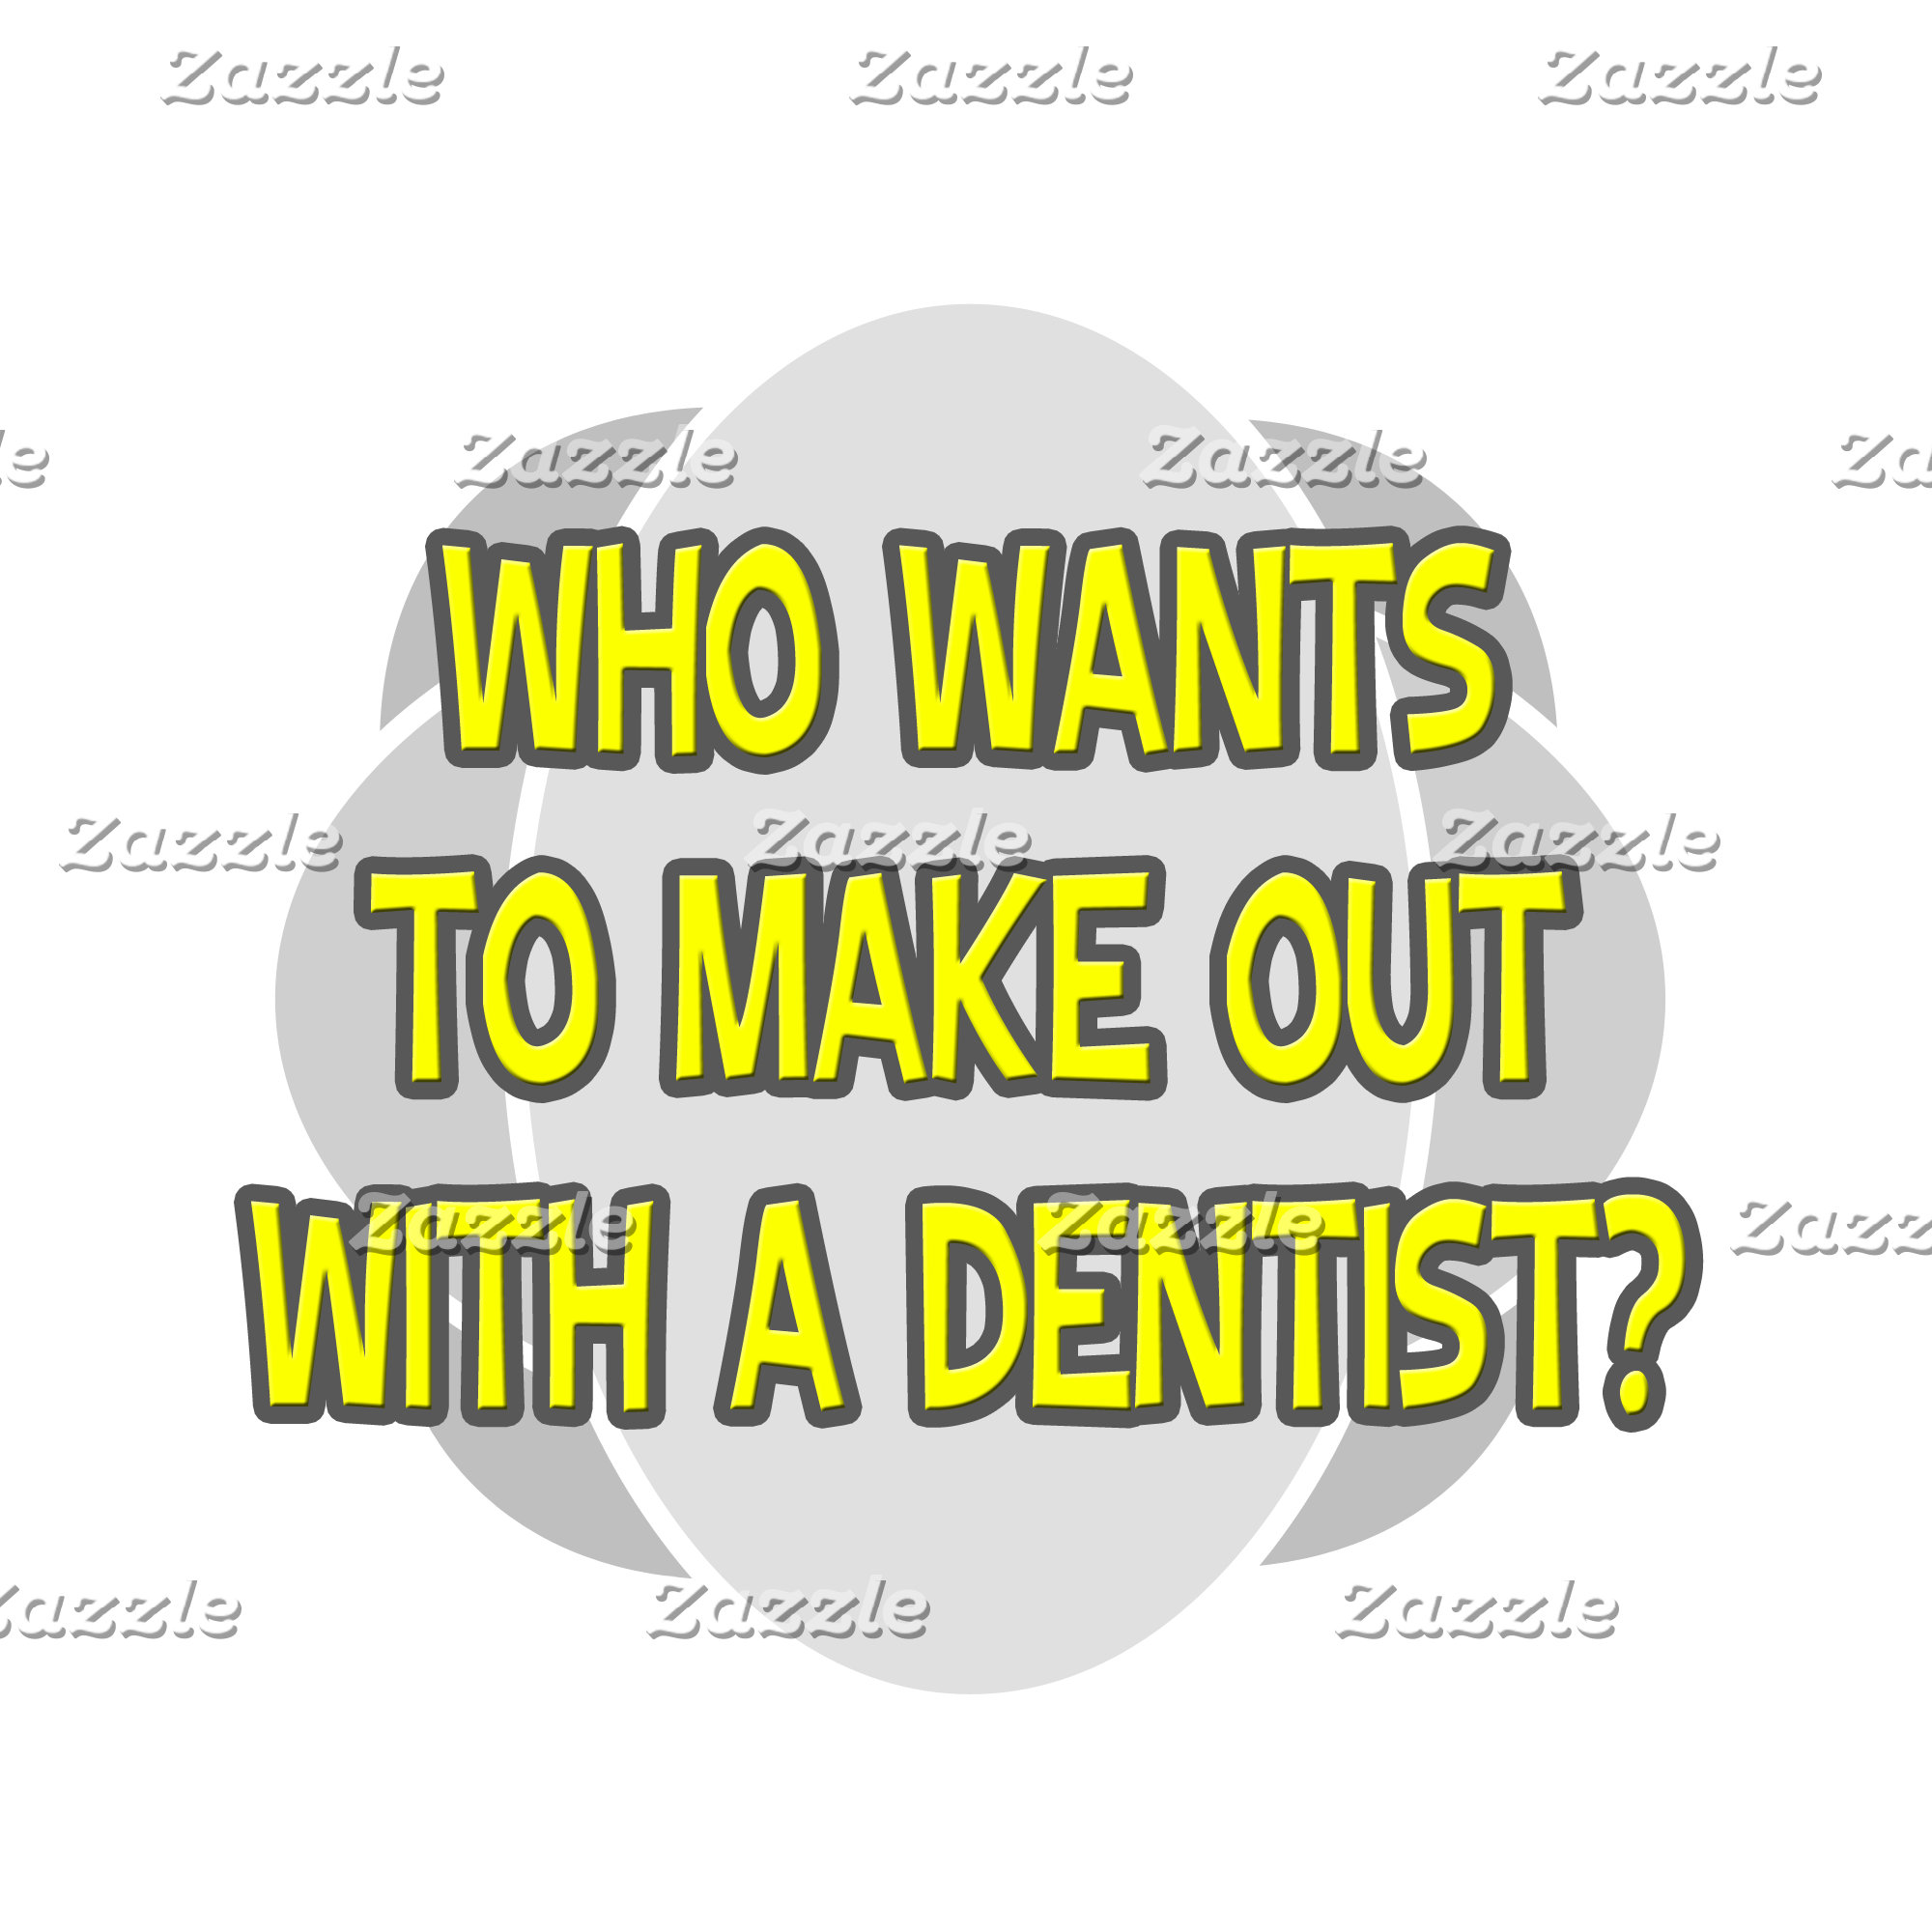 Make Out With a Dentist